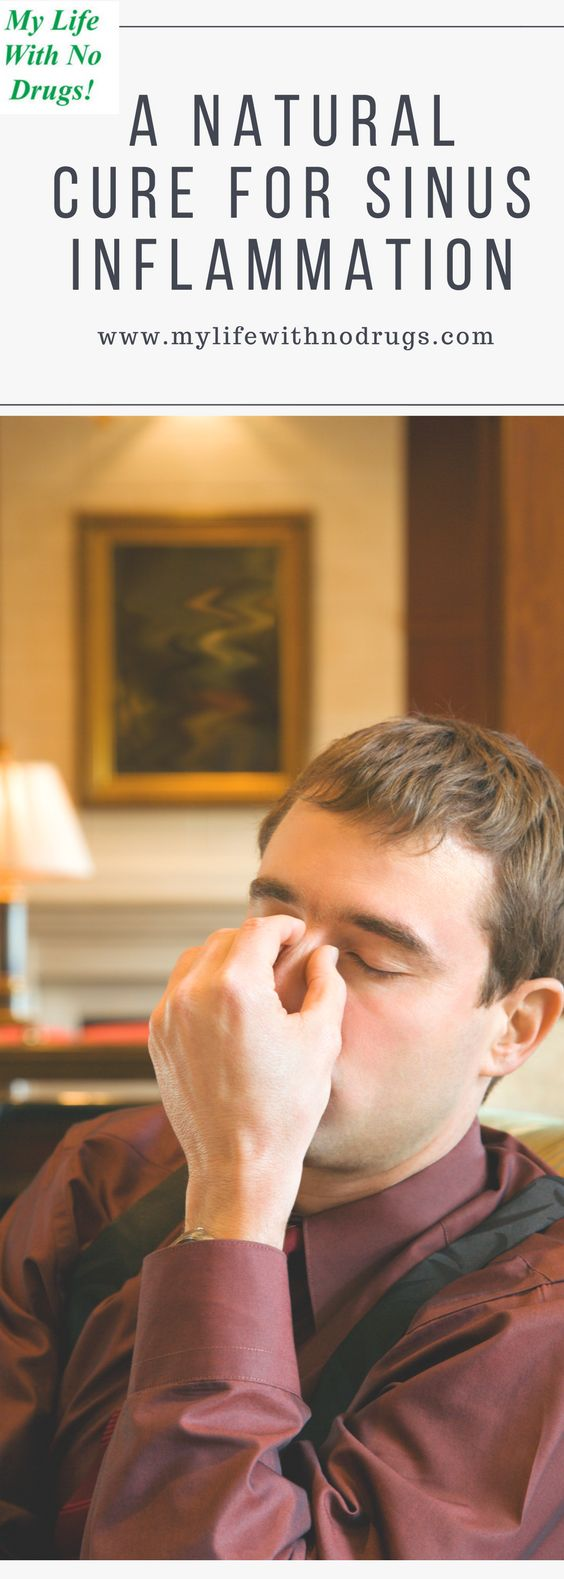 A Natural Cure For #SinusInflammation #Sinus #Inflammation